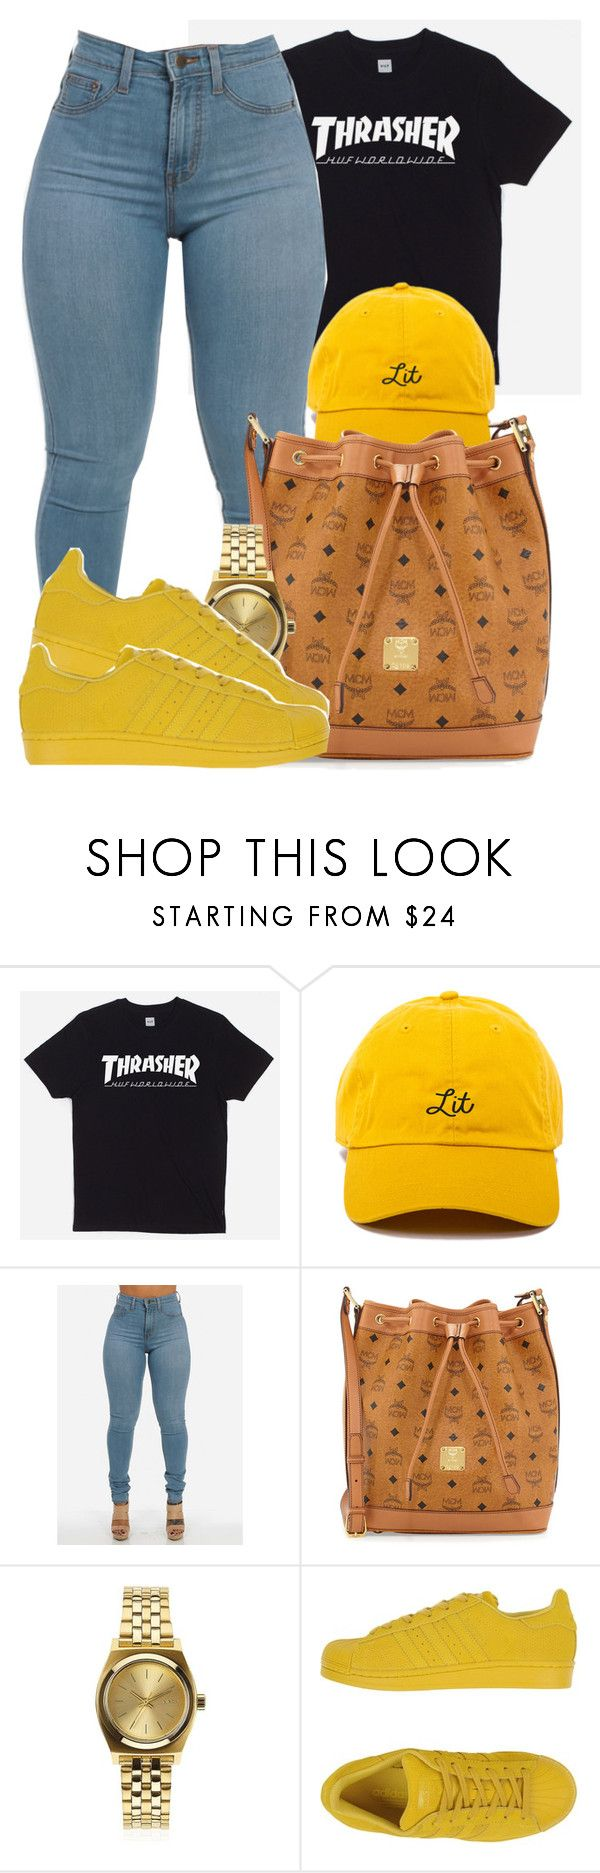 """Thrasher X MCM"" by bria-myell ❤ liked on Polyvore featuring HUF, MCM, Nixon and adidas Originals"